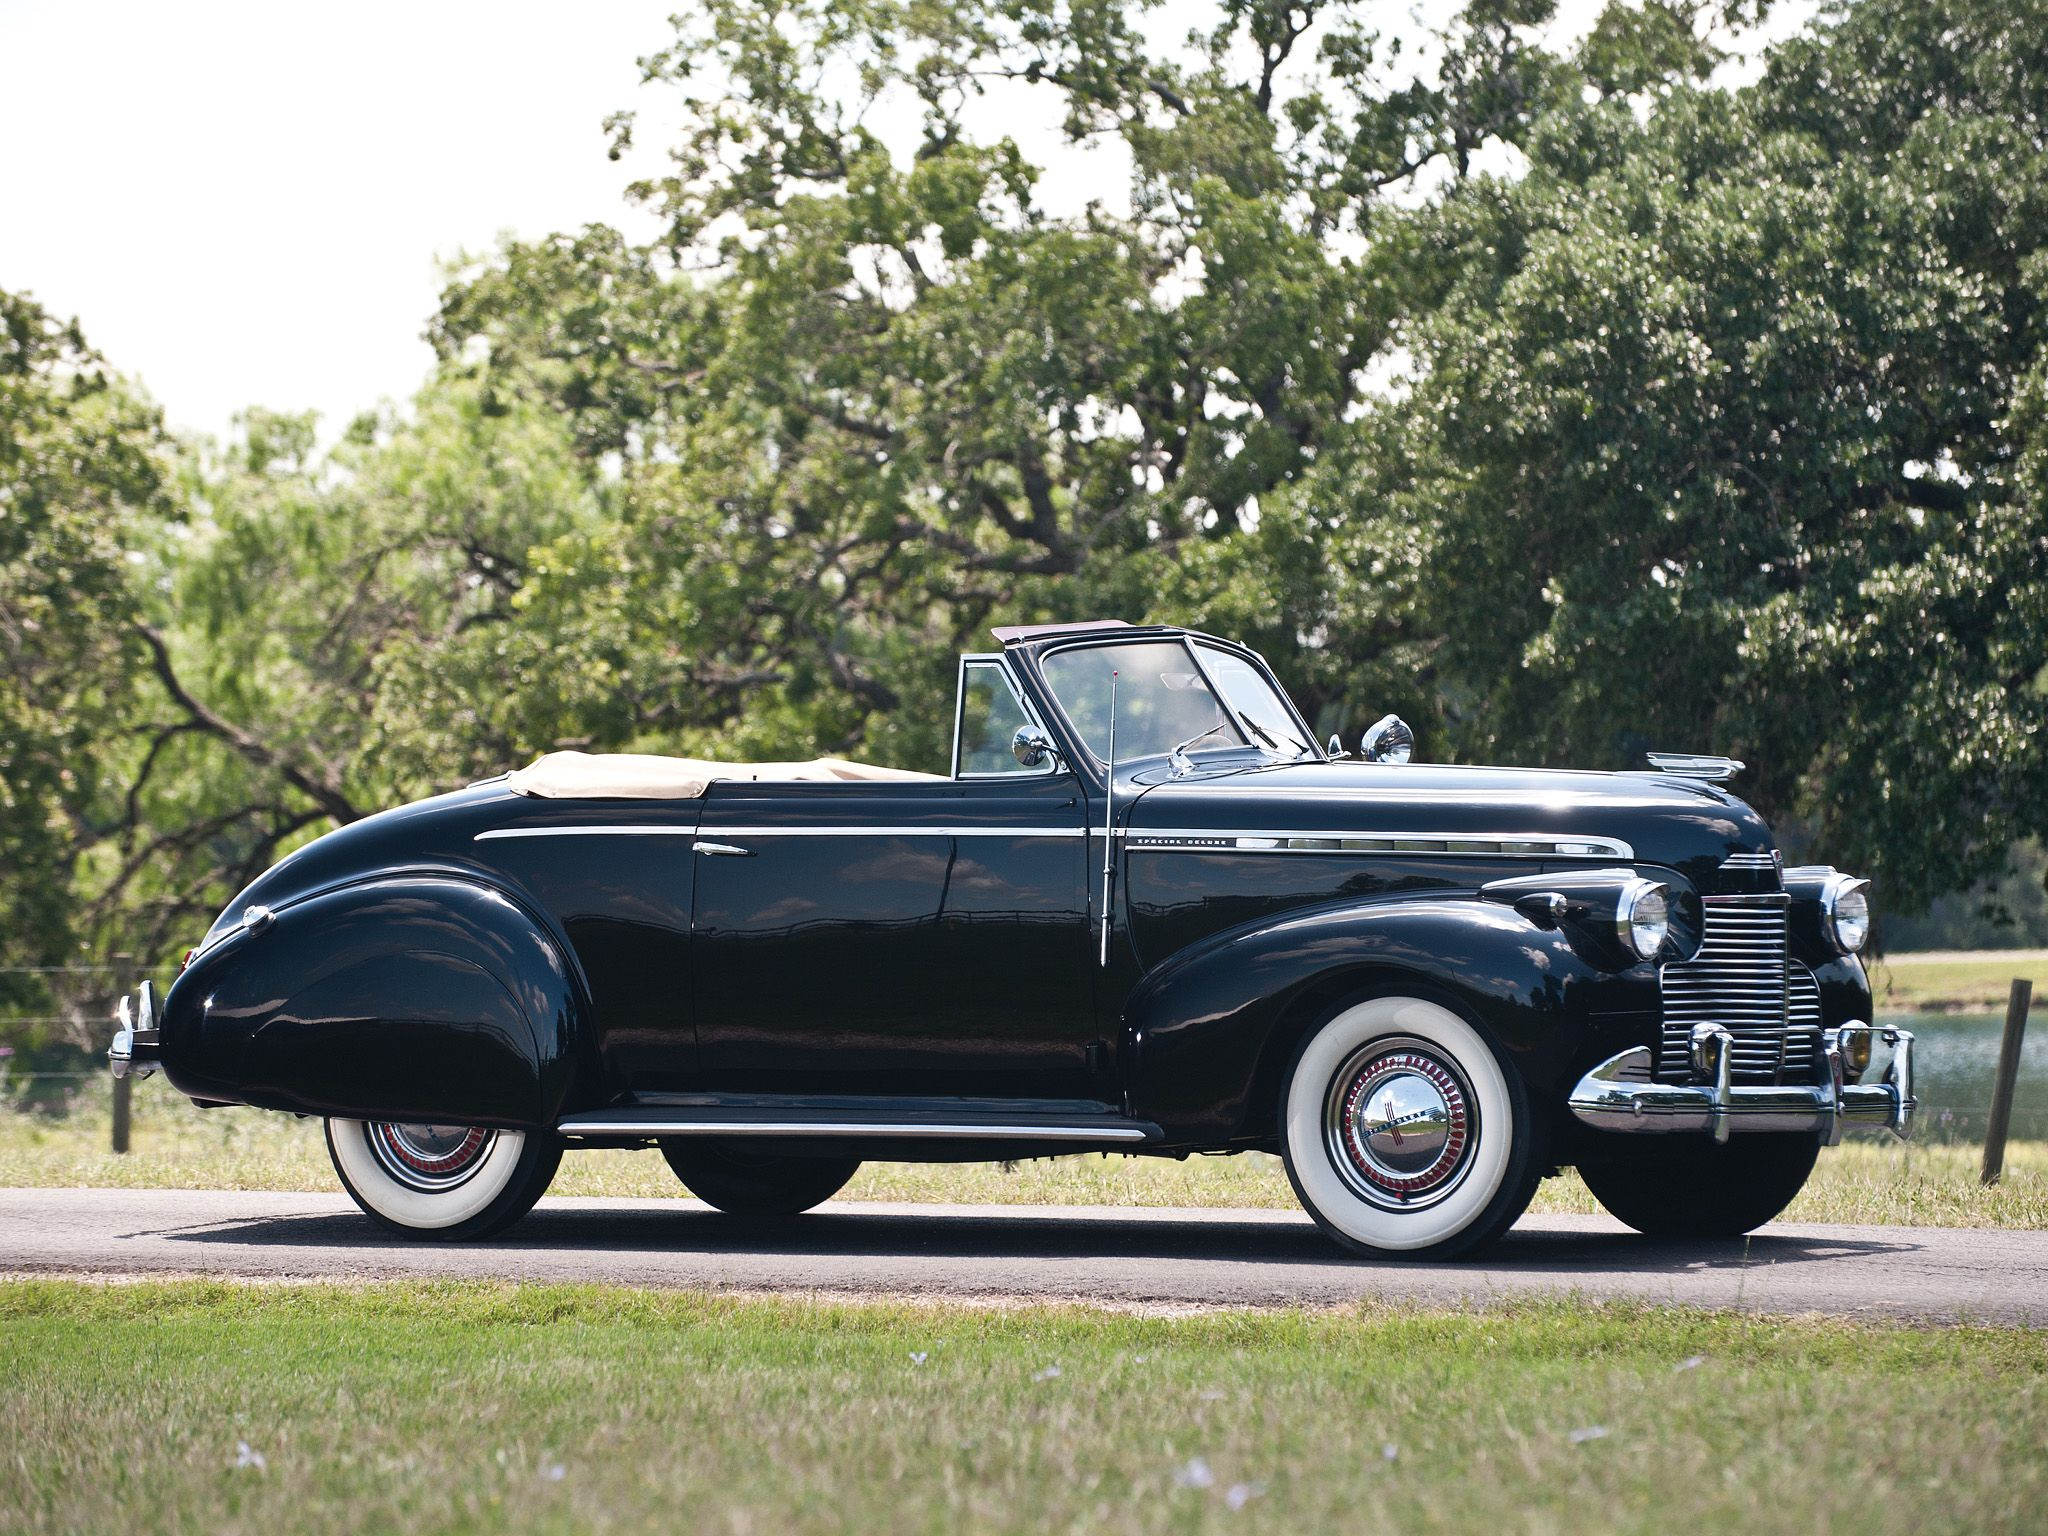 1940 chevy special deluxe | Chevrolet Special DeLuxe Convertible ...